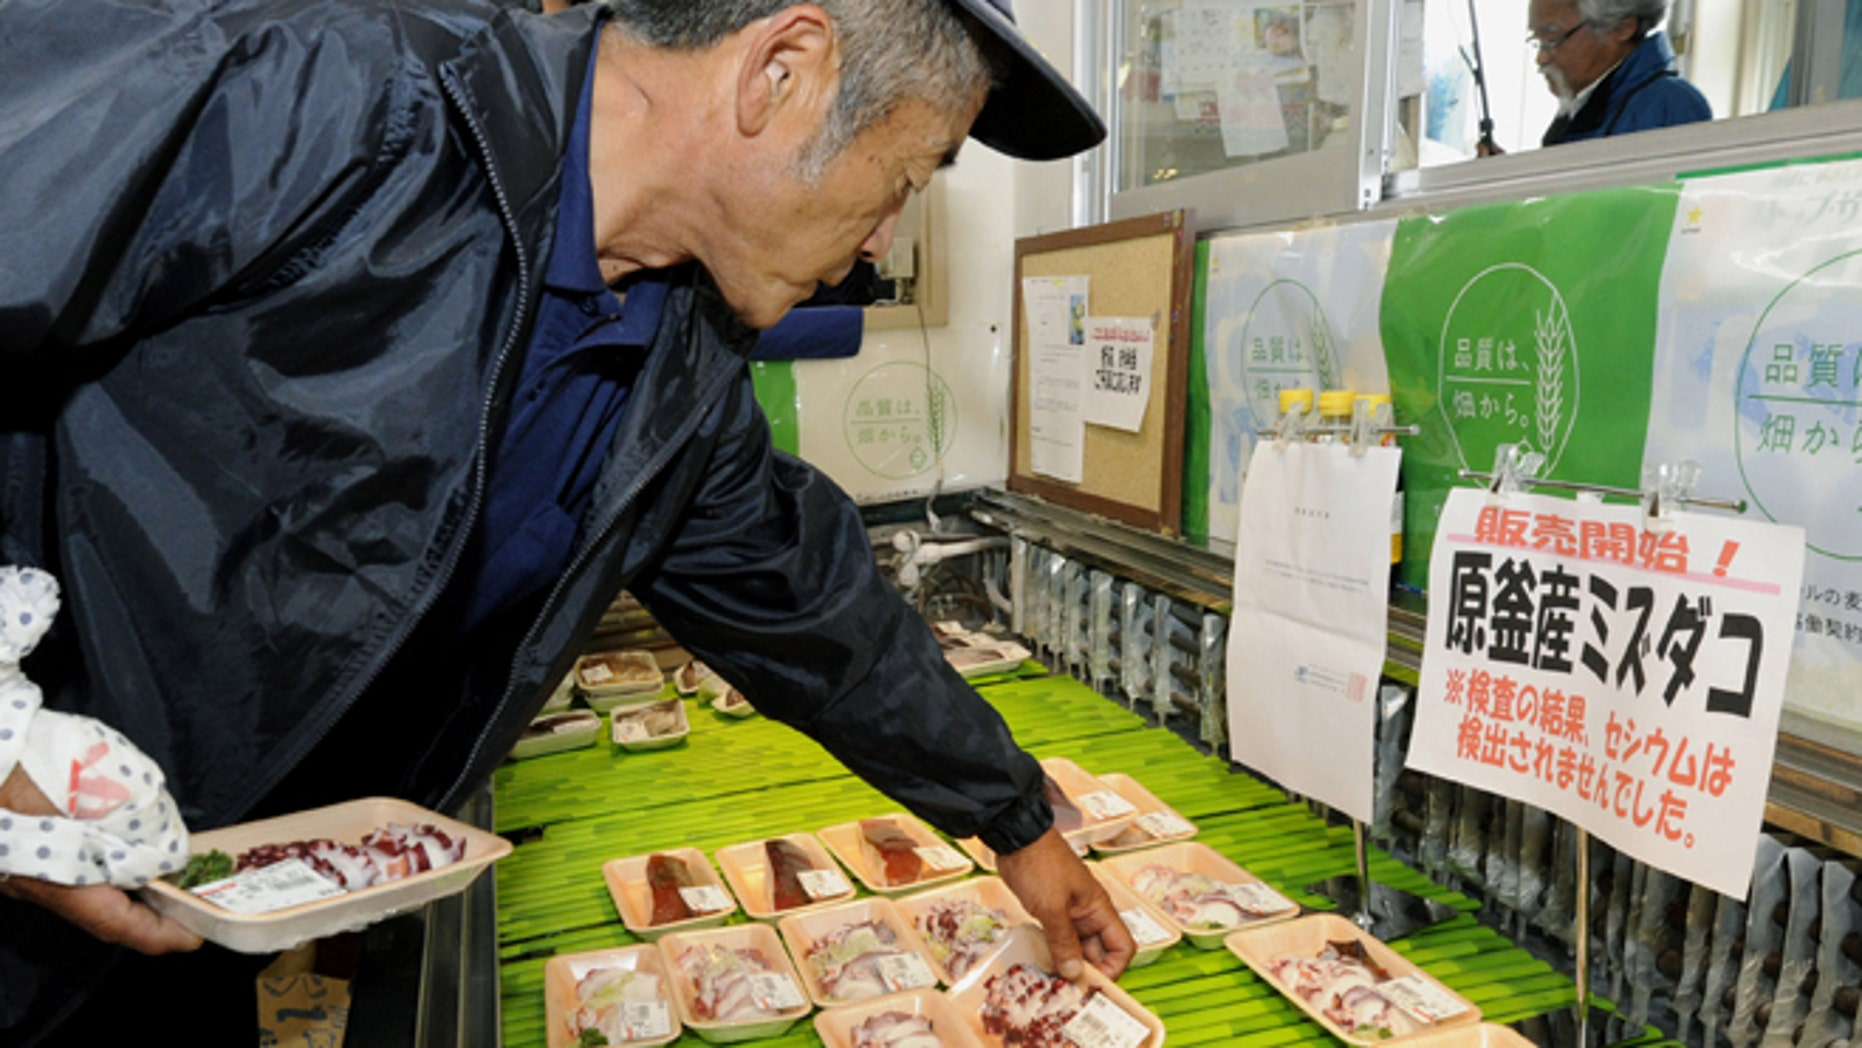 June 25: A shopper chooses packs of octopus caught in the water off Fukushima at a supermarket in Soma, Fukushima Prefecture, northeastern Japan.